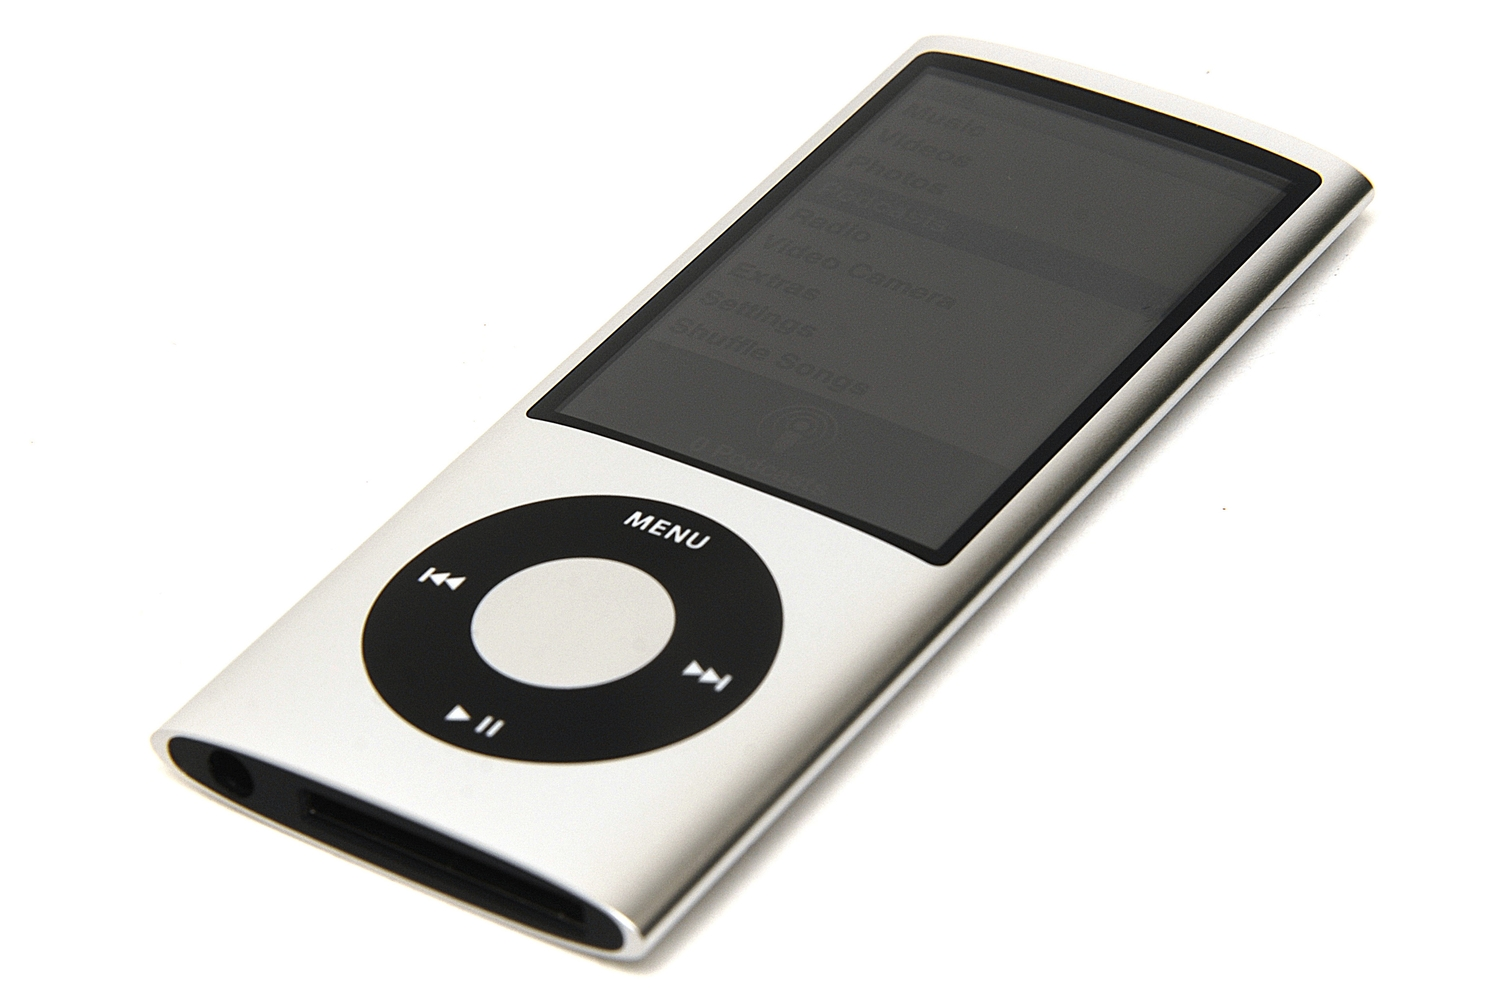 apple ipod nano 5th generation review apple 39 s revamped. Black Bedroom Furniture Sets. Home Design Ideas